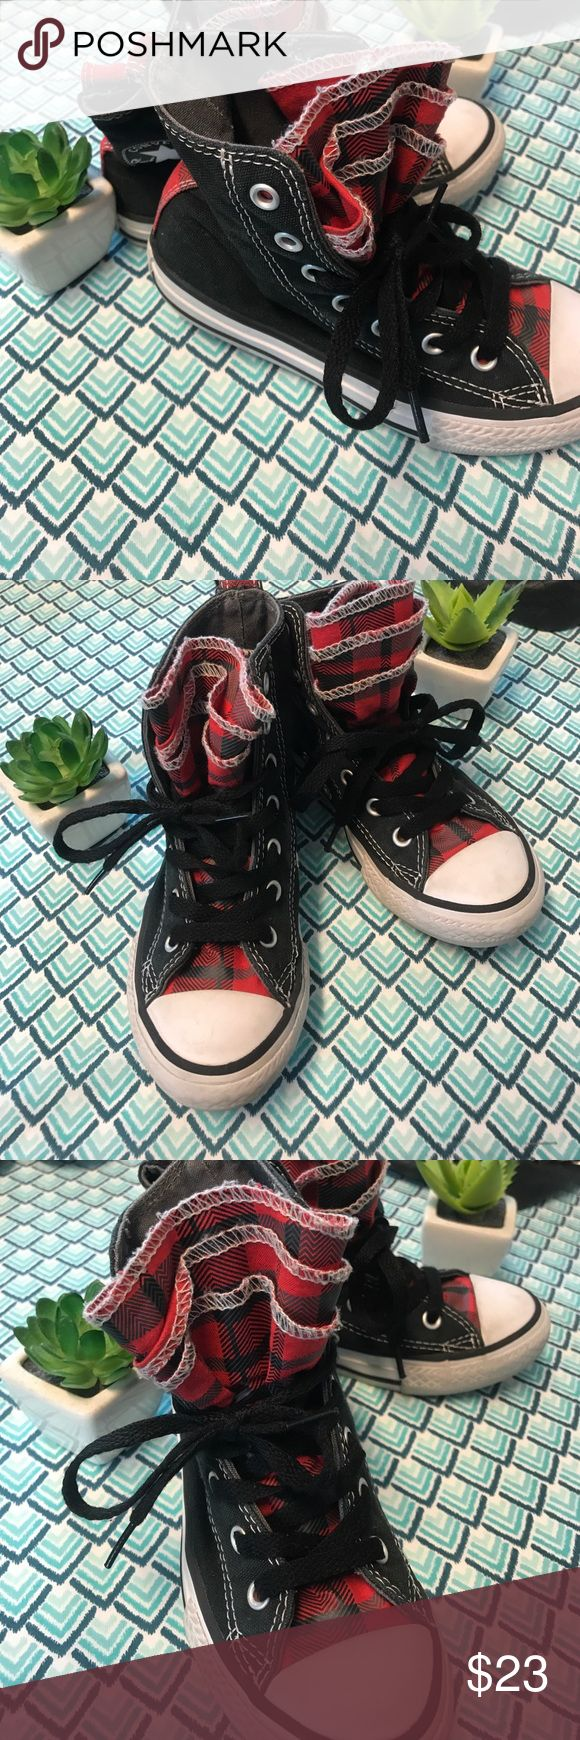 Unique converse Black and plaid red Black converse. Plaid red and charcoal grey tongue. I love the tongue and how it hugs the ankle even when the top laces aren't tied :) large converse logo on the inside ankle of each shoe 👌🏼👌🏼❤️❤️ Converse Shoes Sneakers